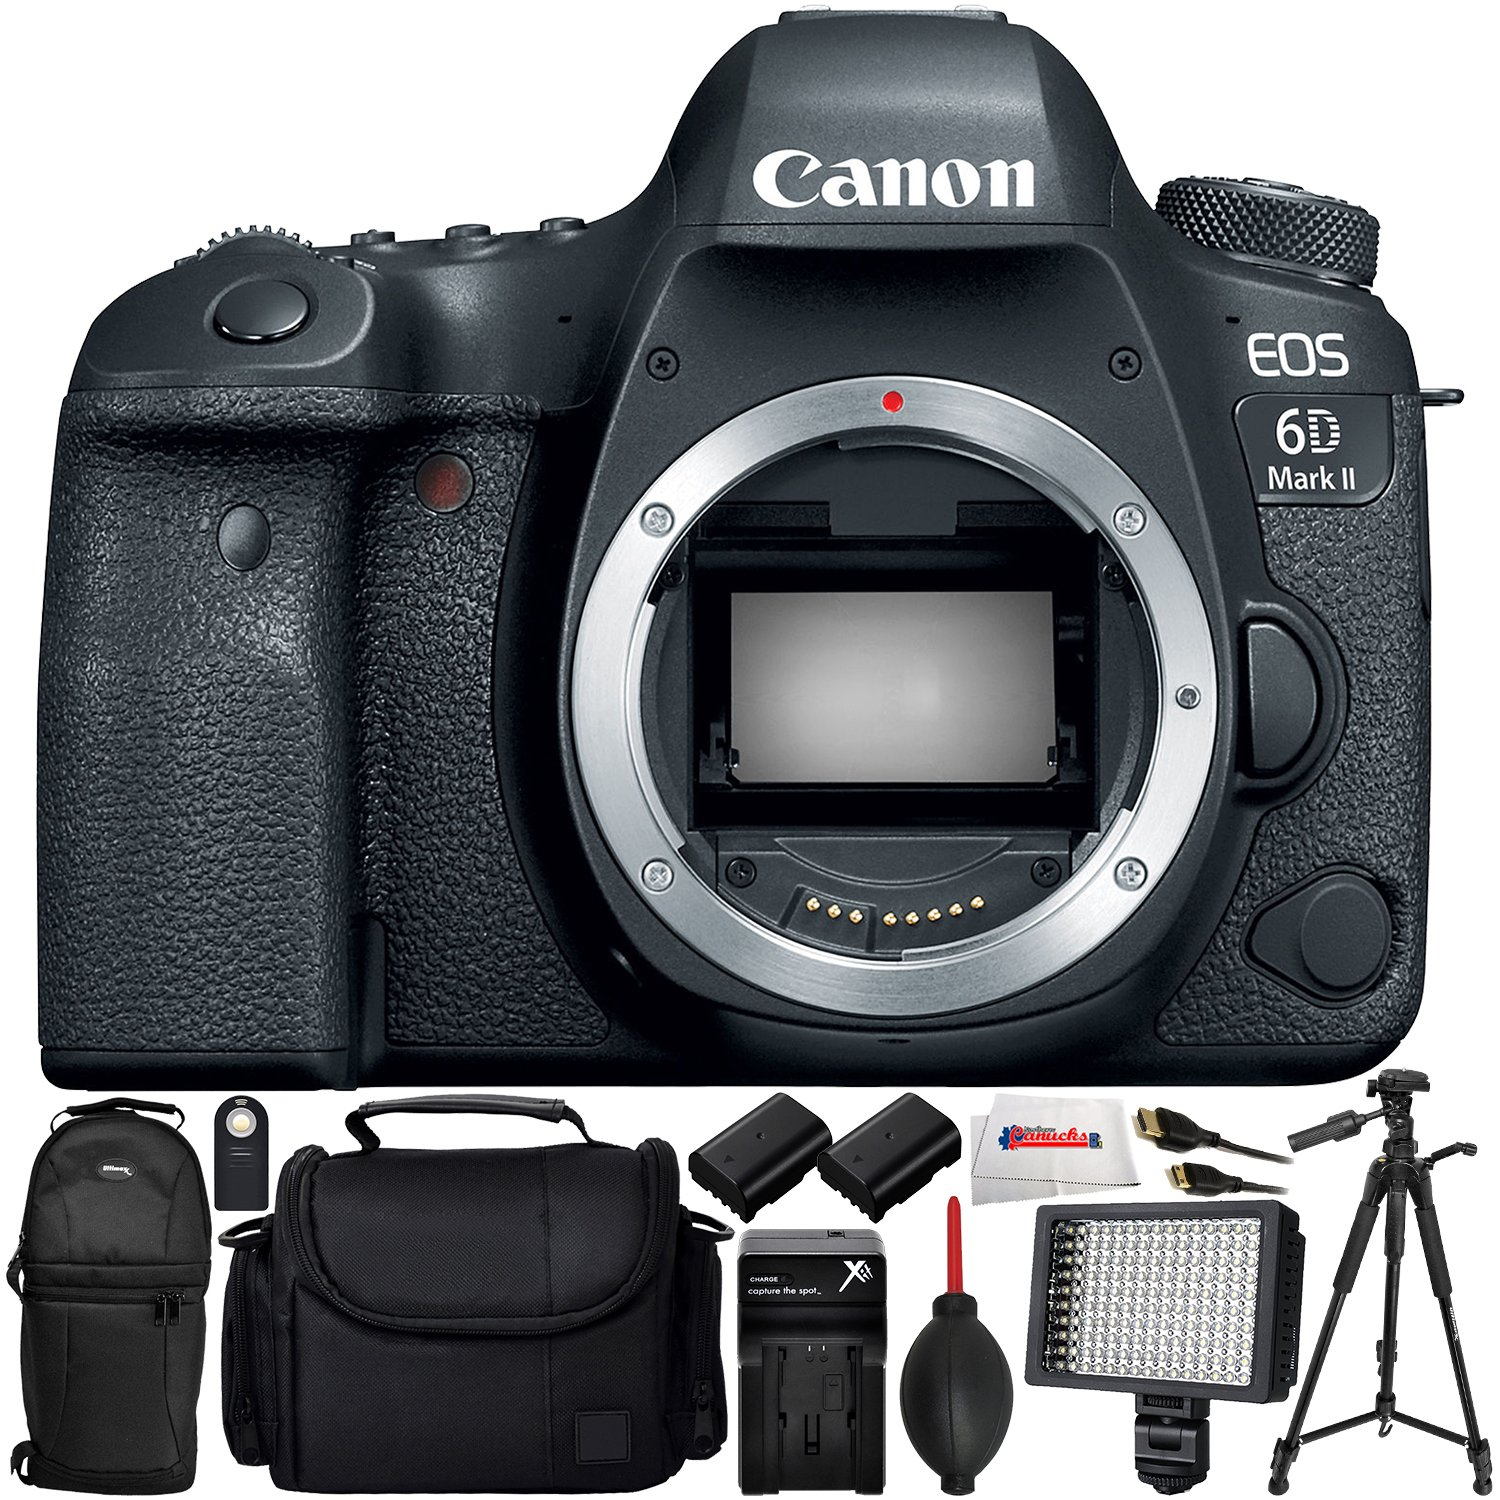 Canon EOS 6D Mark II DSLR Camera (Body Only) - International Version (No Warranty) Includes 2 Extended Life Replacement Batteries + Professional 160 LED Video Light + Full-Size 72' Tripod & More!